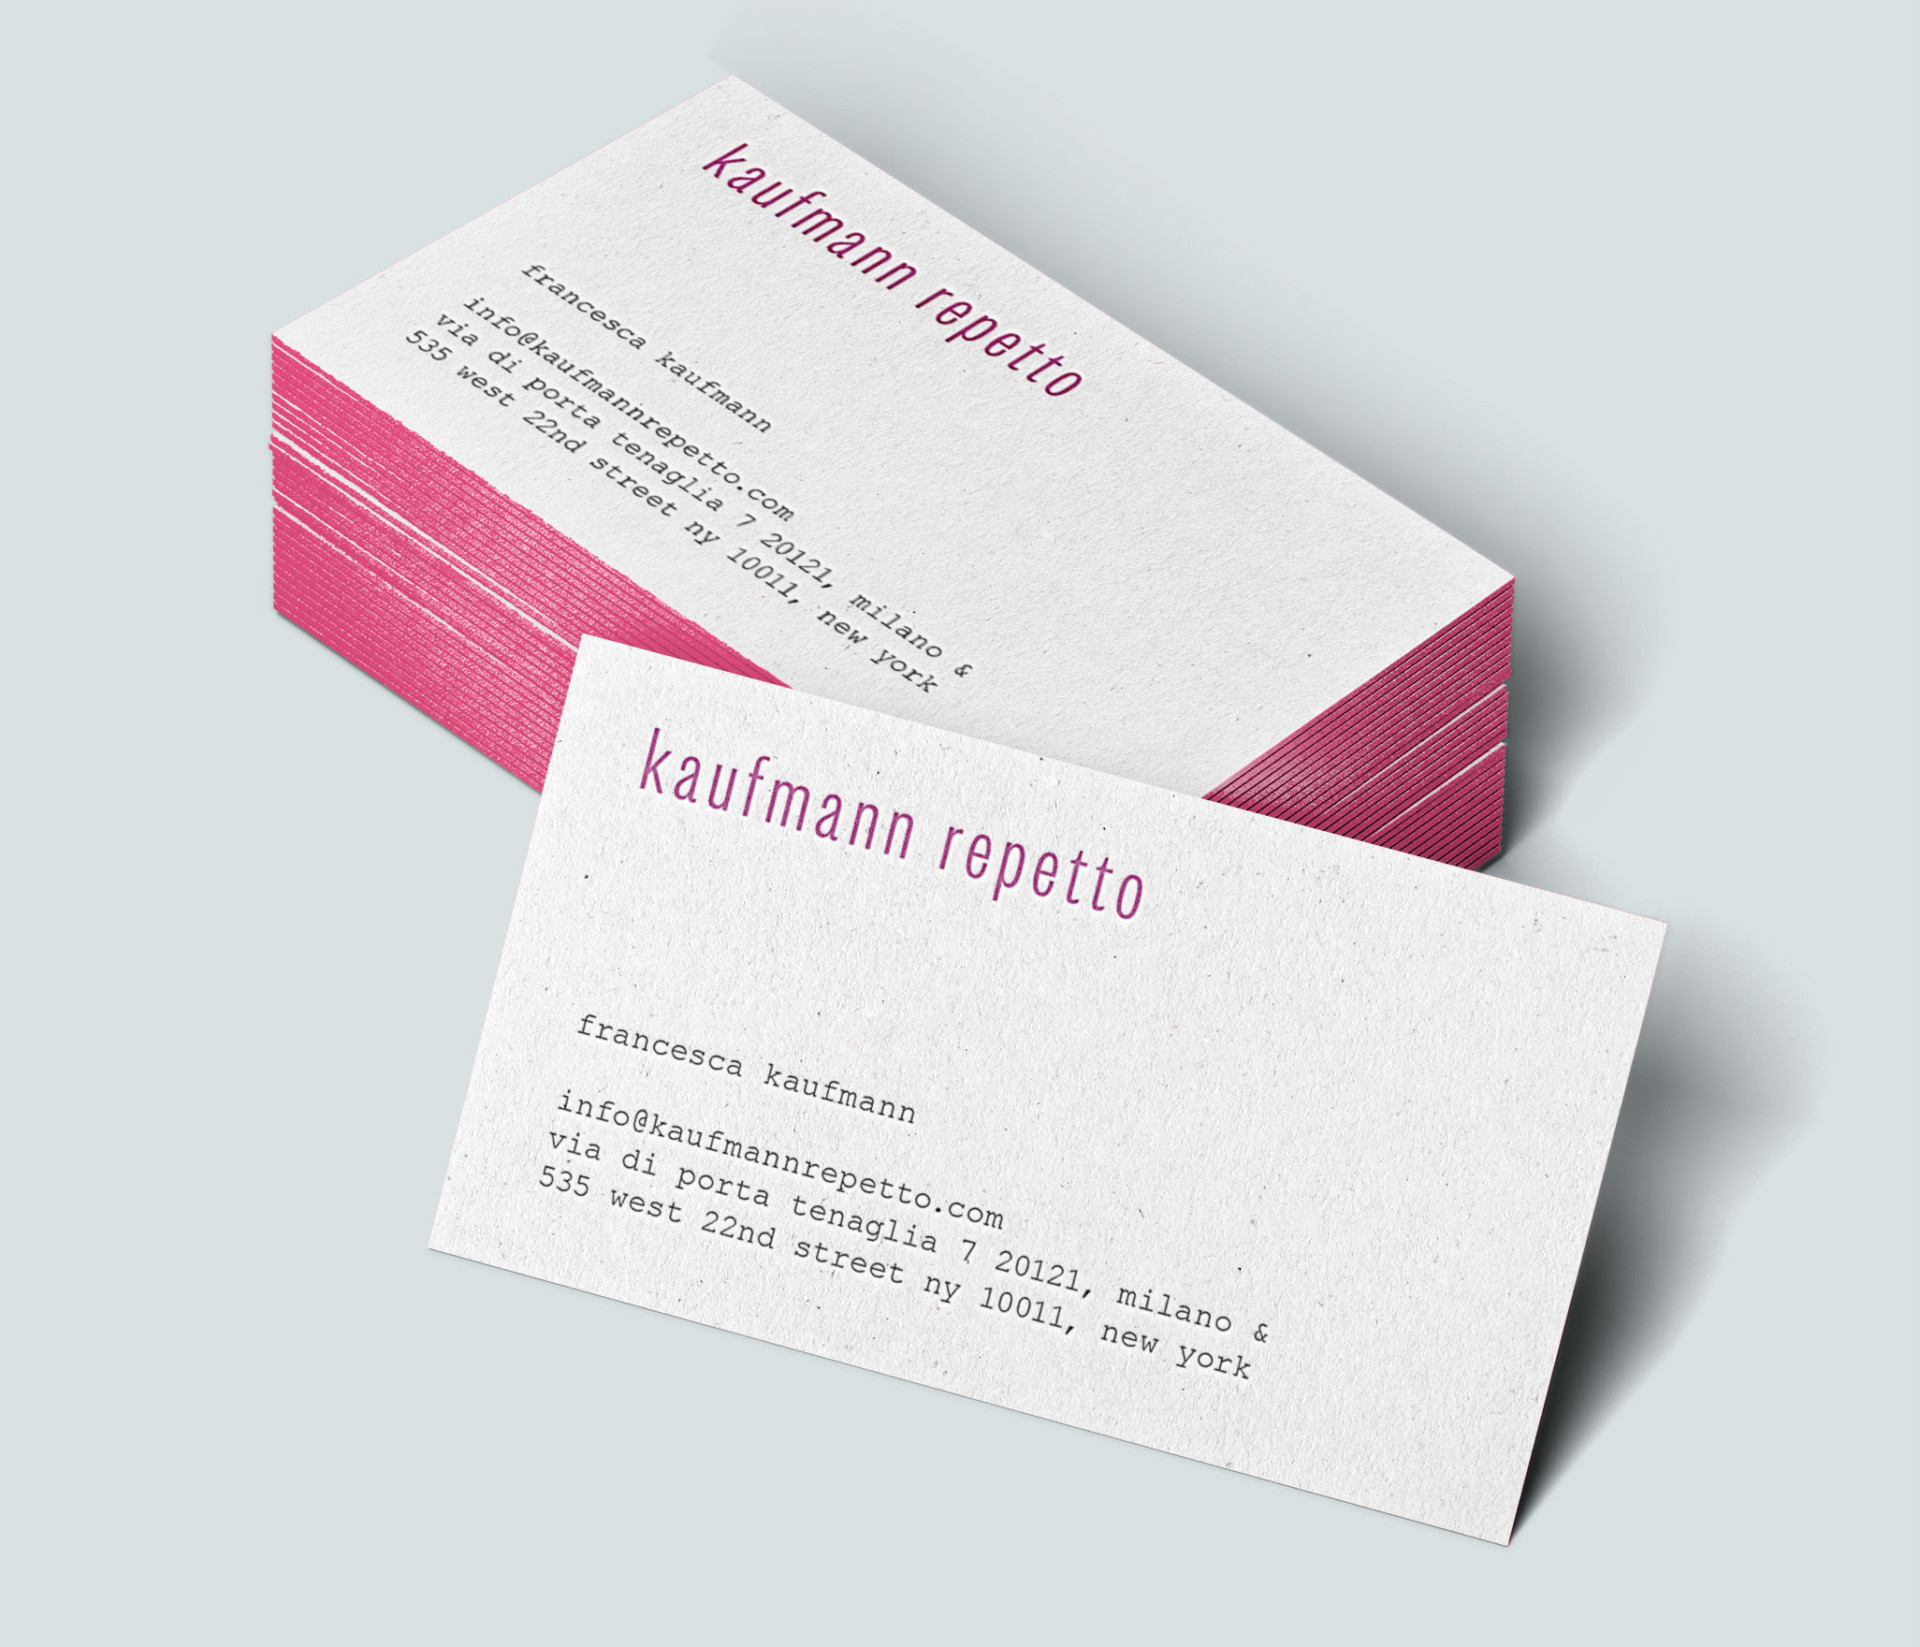 MOUSSE AGENCY KAUFMANN REPETTO — 2016